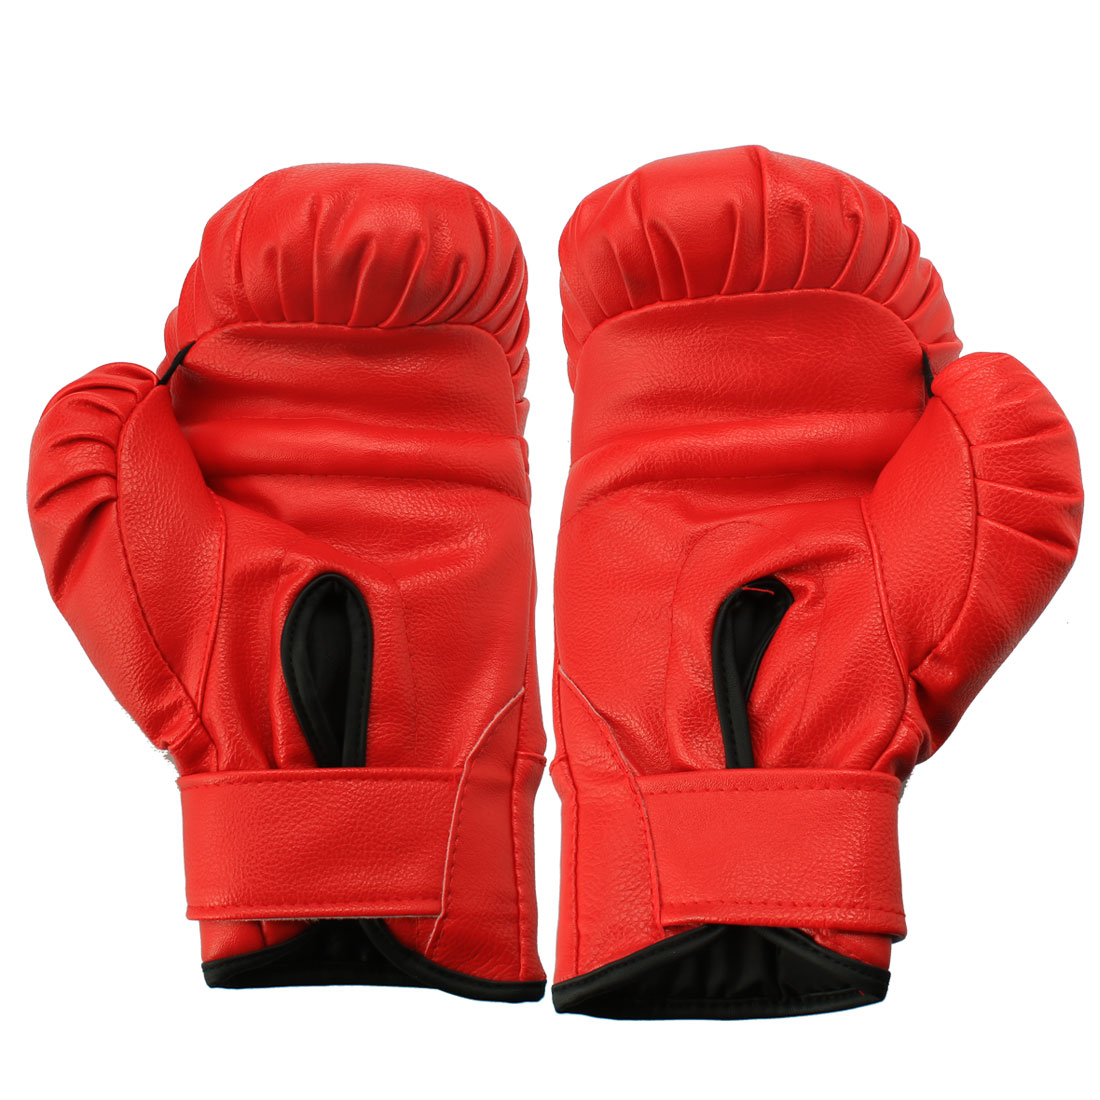 Red Professional Design Leather Boxing Glove for Training